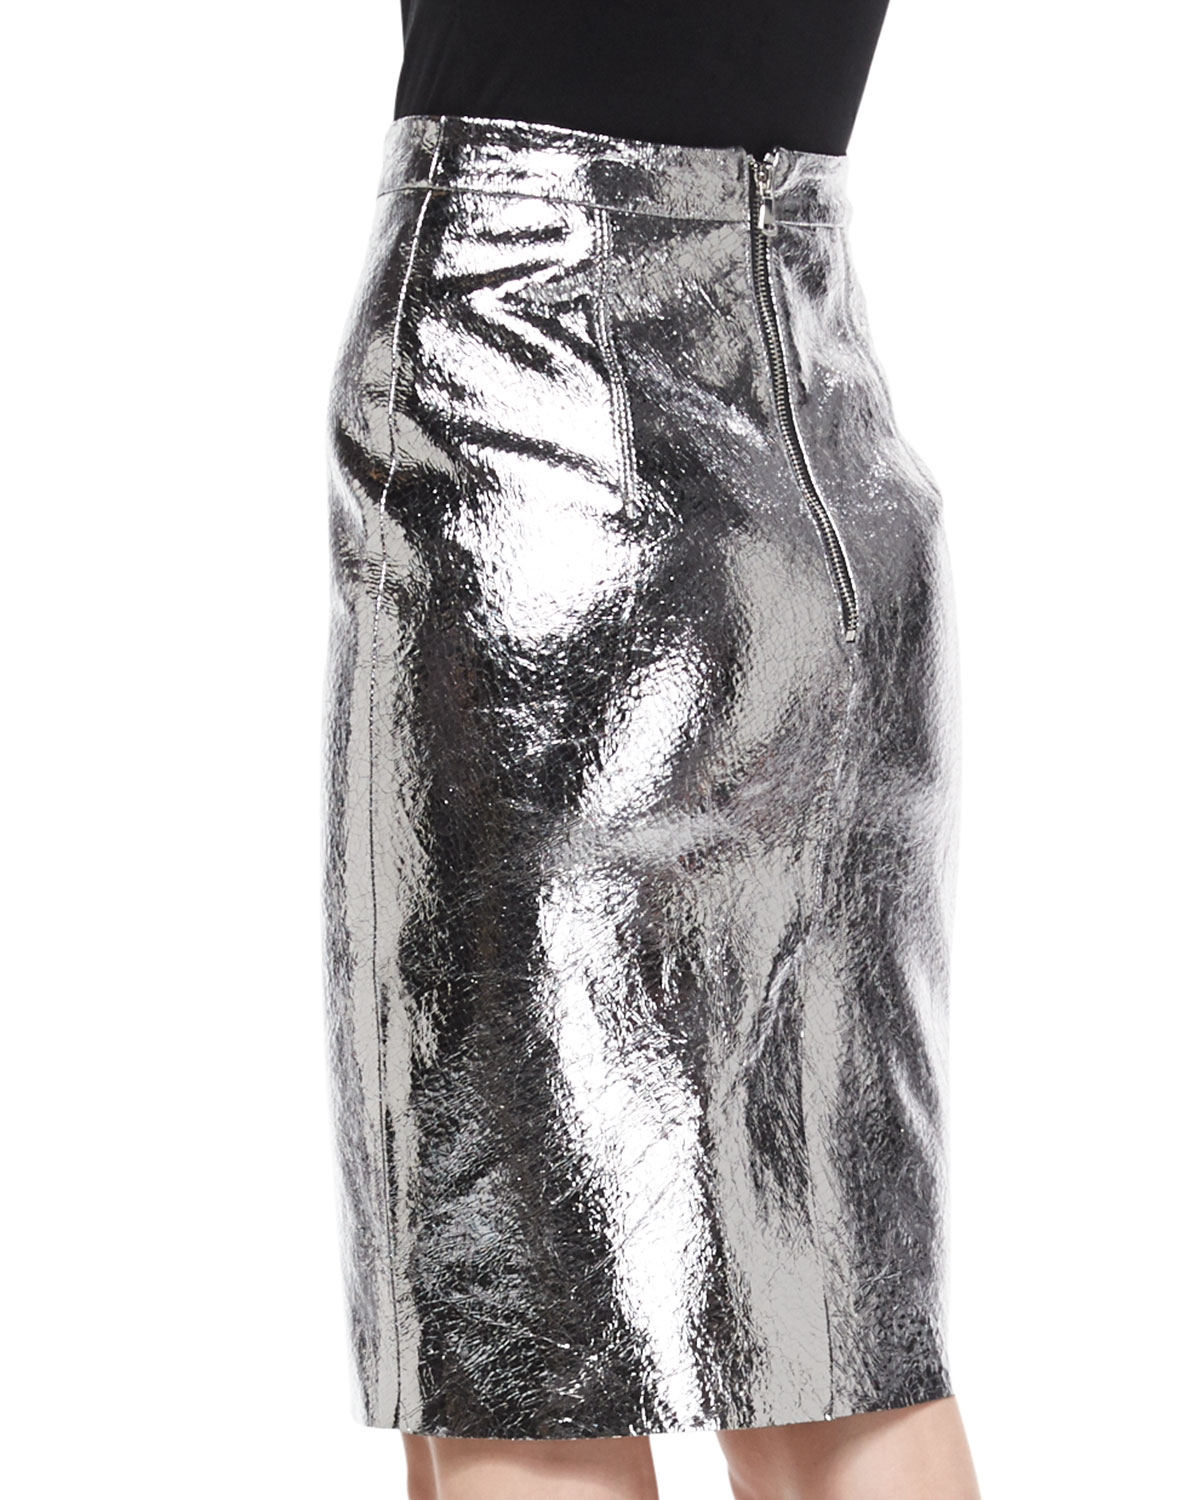 d15cea00834 Lyst - MILLY Metallic Leather Pencil Skirt in Metallic